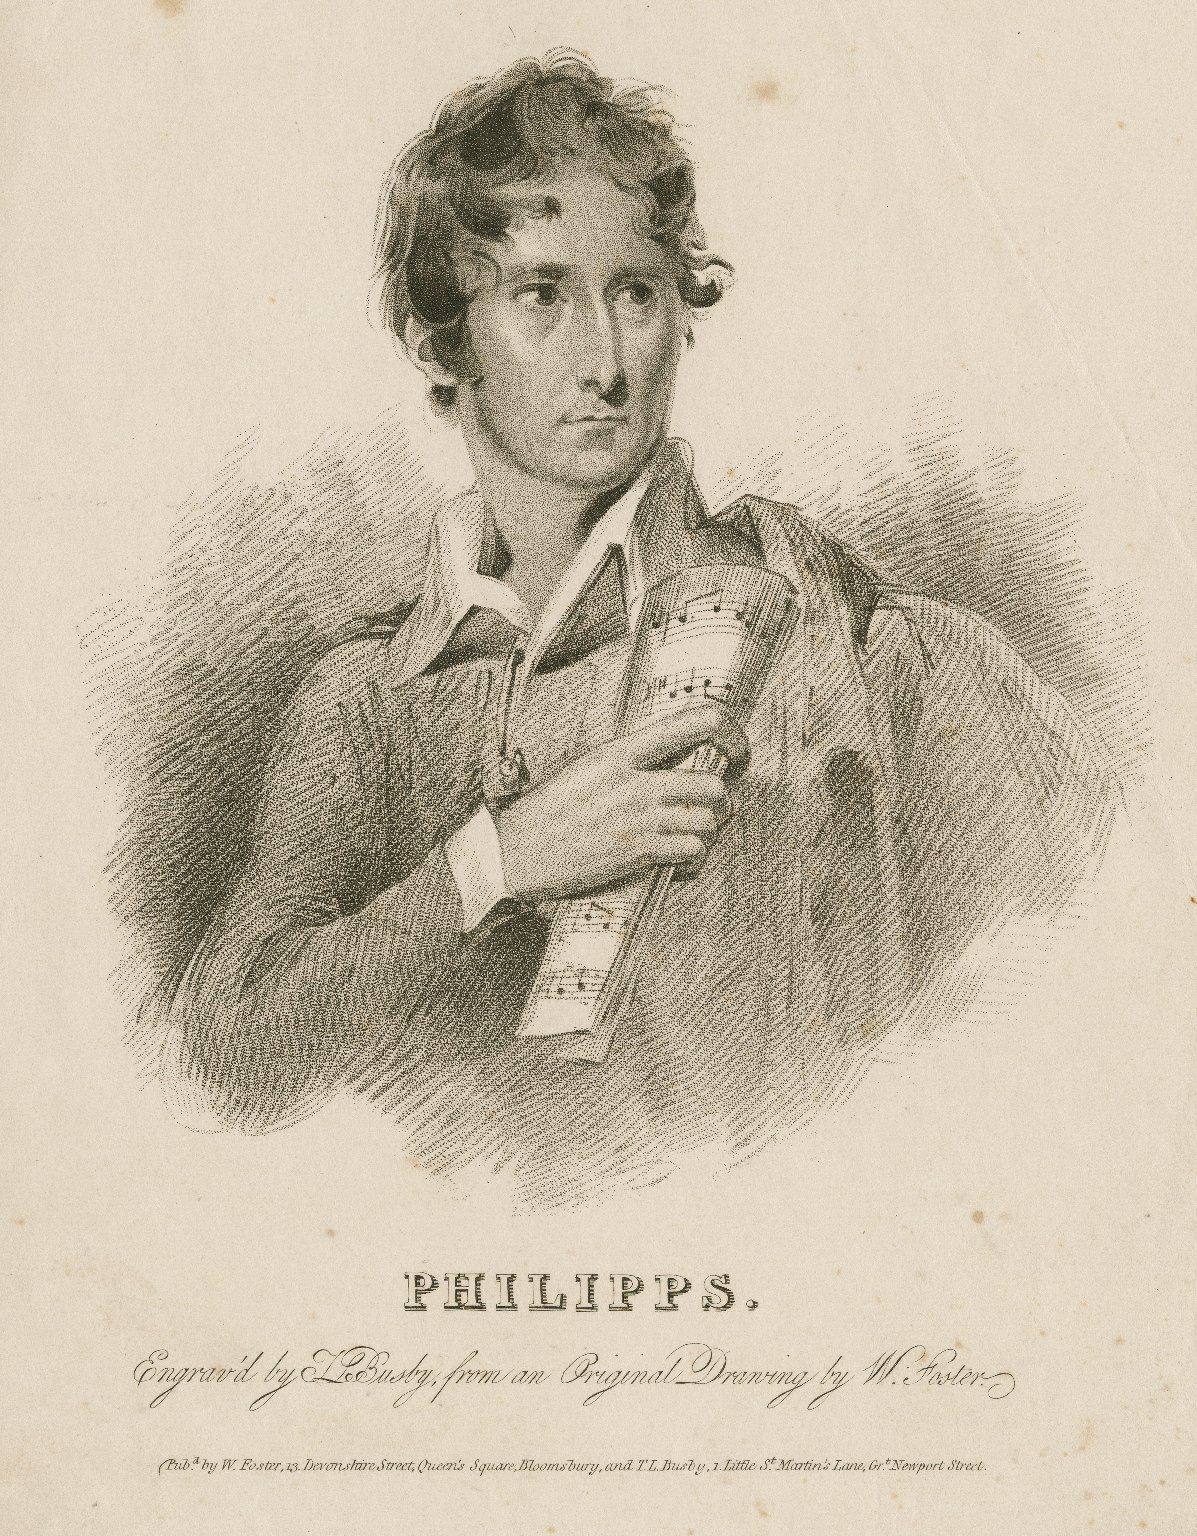 Philipps [graphic] / engrav'd by T.L. Busby ; from an original drawing by W. Foster.